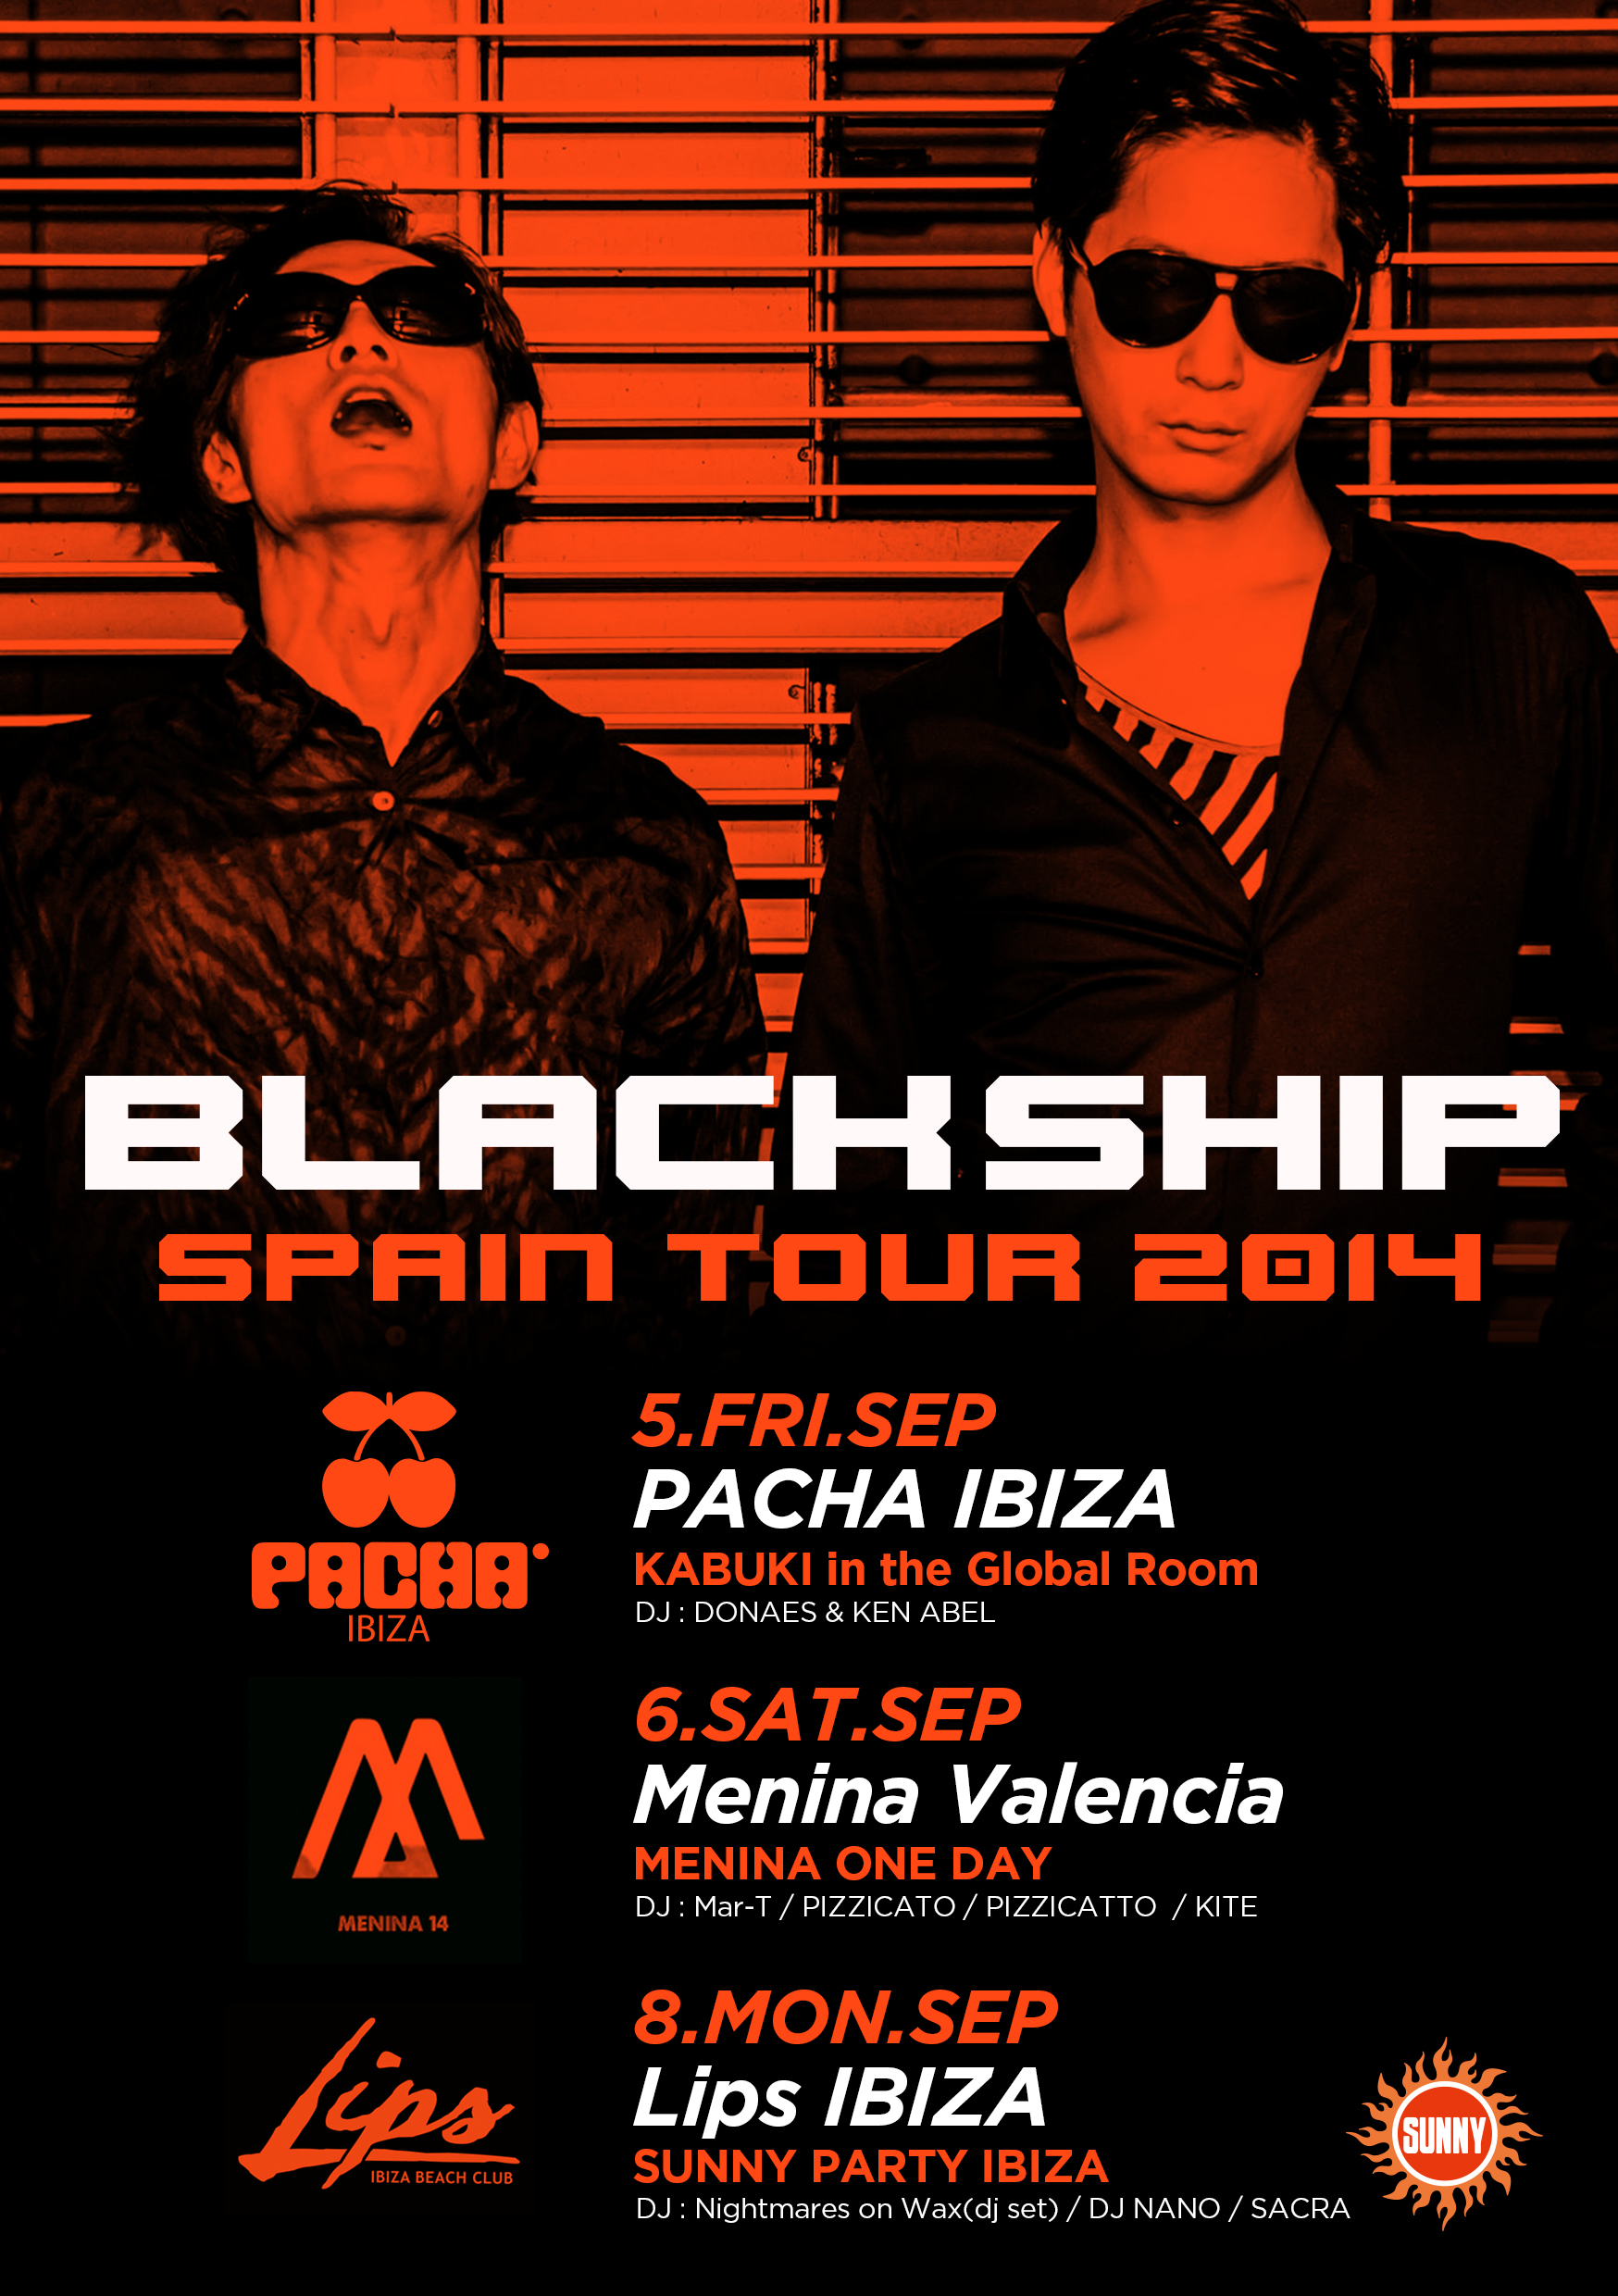 BLACK SHIP SPAIN TOUR 2014